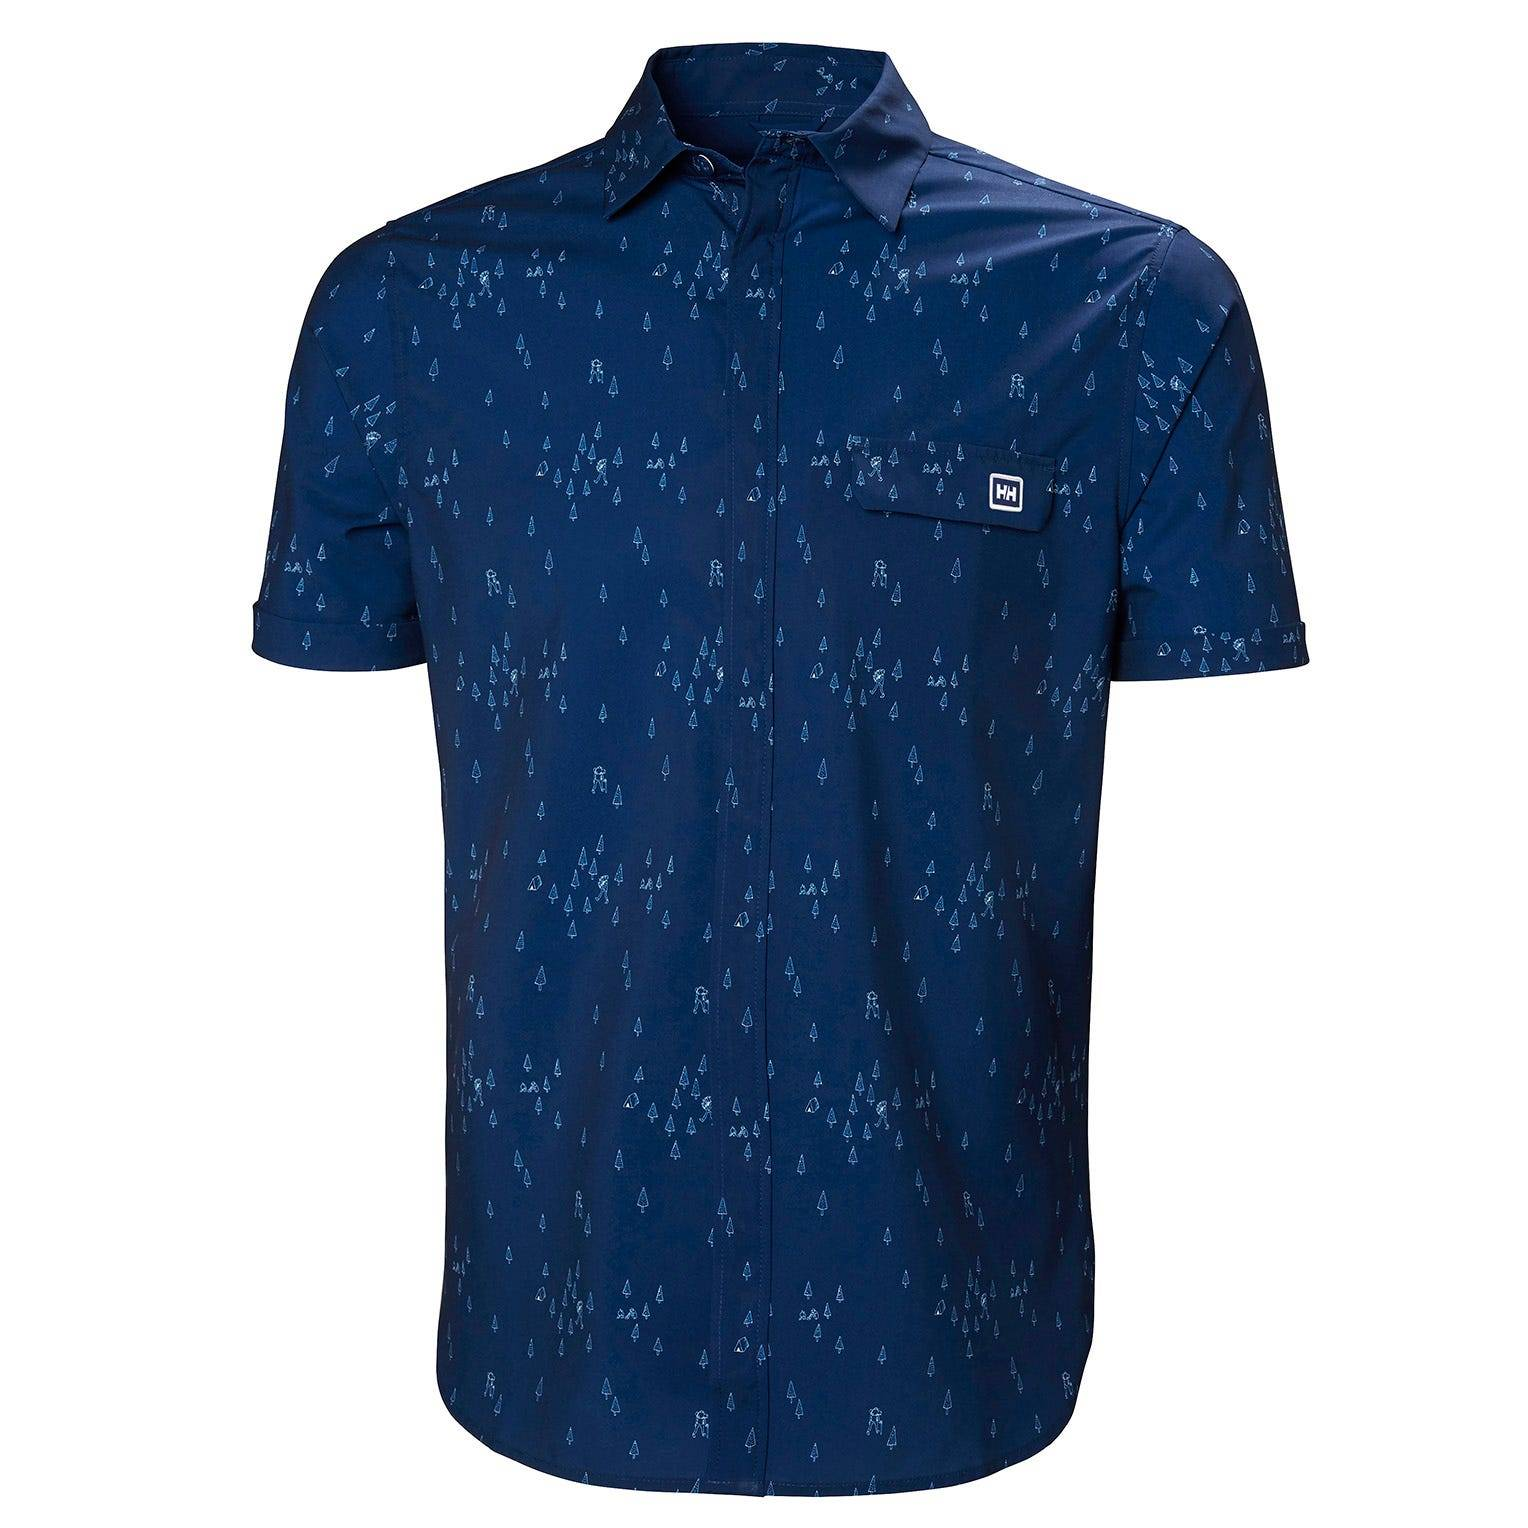 Helly Hansen Oya Shirt Blue XL